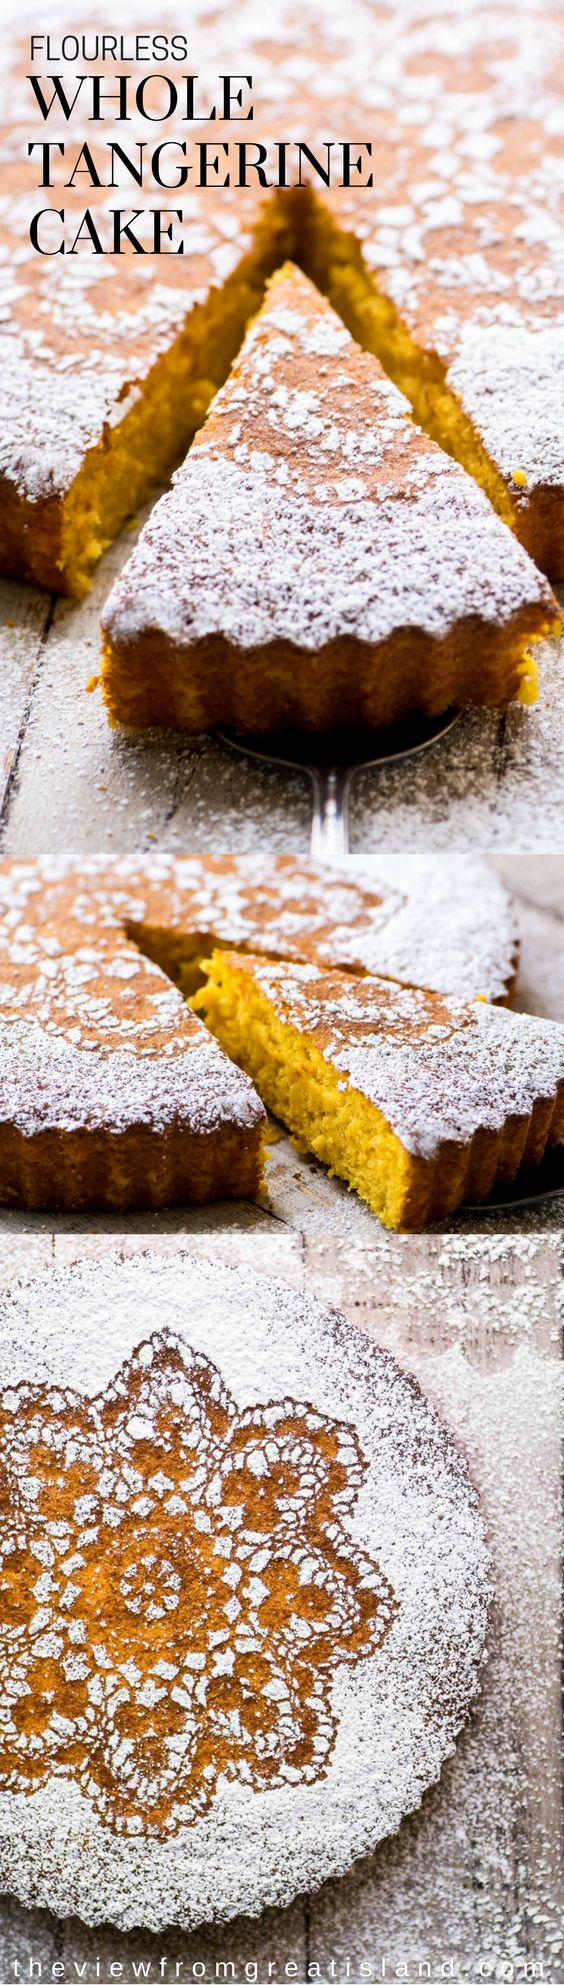 Gluten Free Whole Tangerine Cake ~ this cake is such a wonderful surprise, made with whole tangerines and almond flour in the Italian tradition.